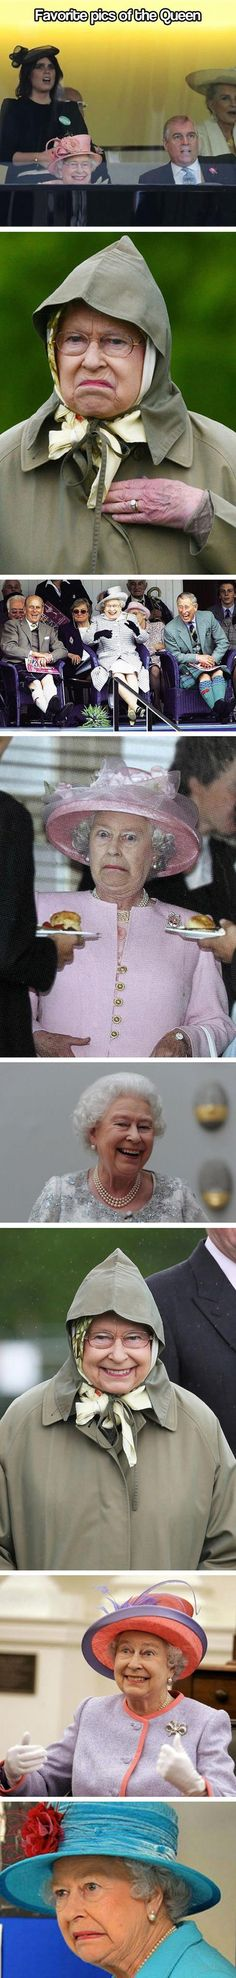 Favorite pictures of the Queen of England.